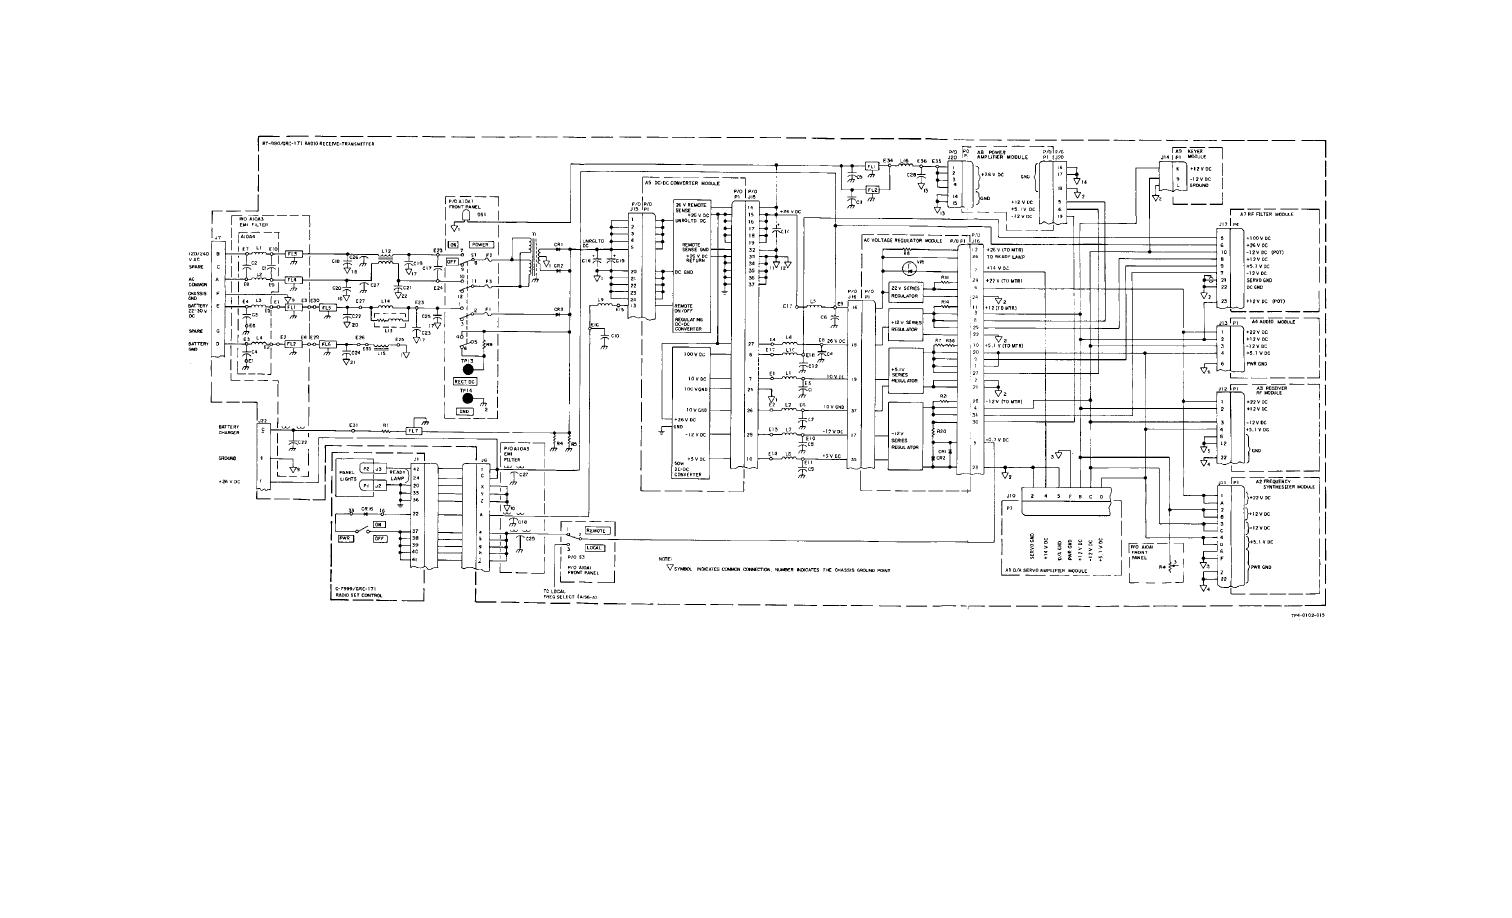 Figure Fo 14 Radio Set An Grc 171 Power Distribution Diagram